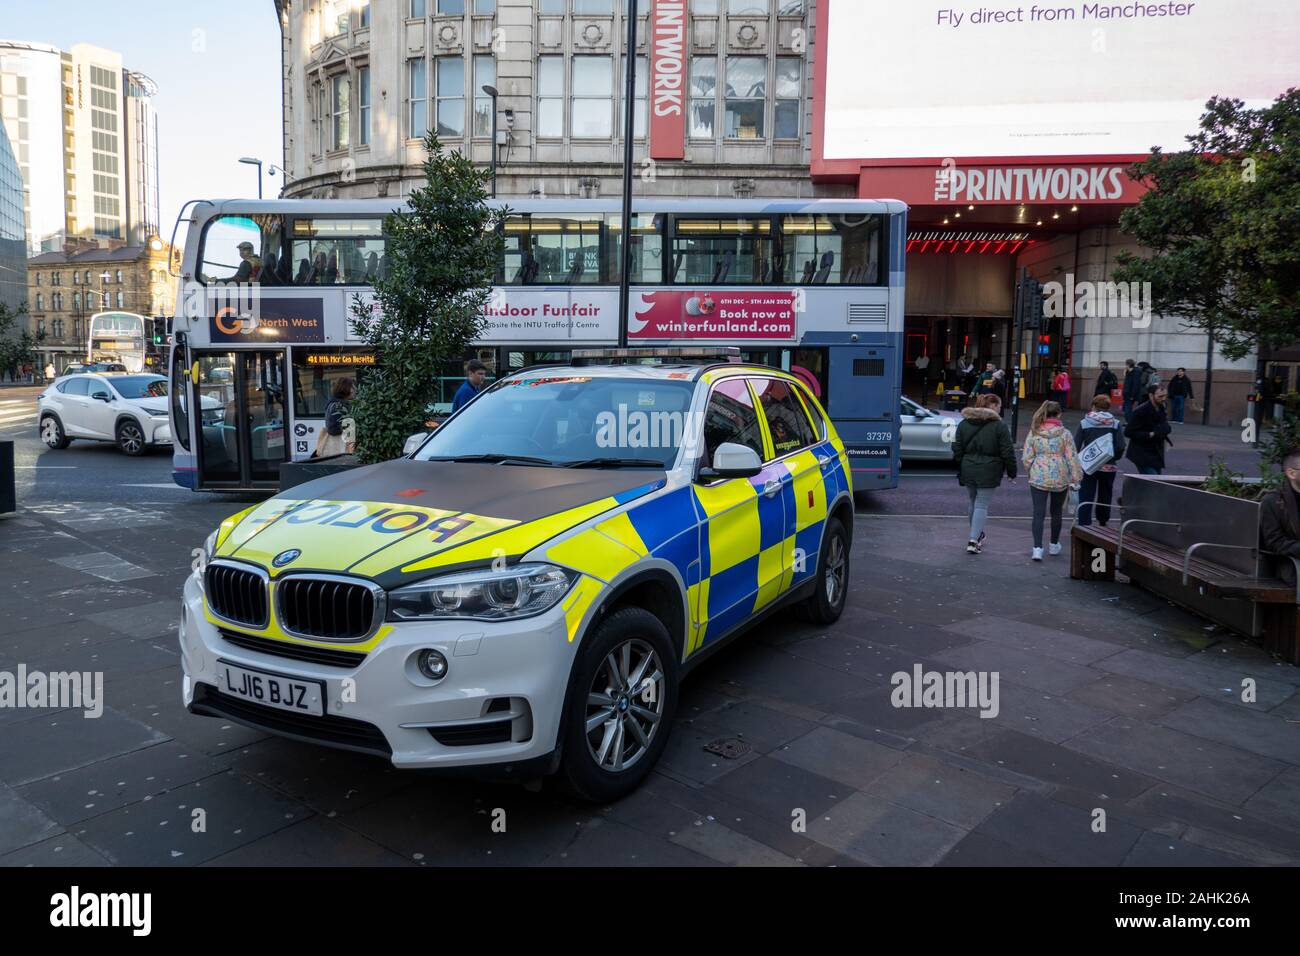 police-response-car-outside-the-printwor